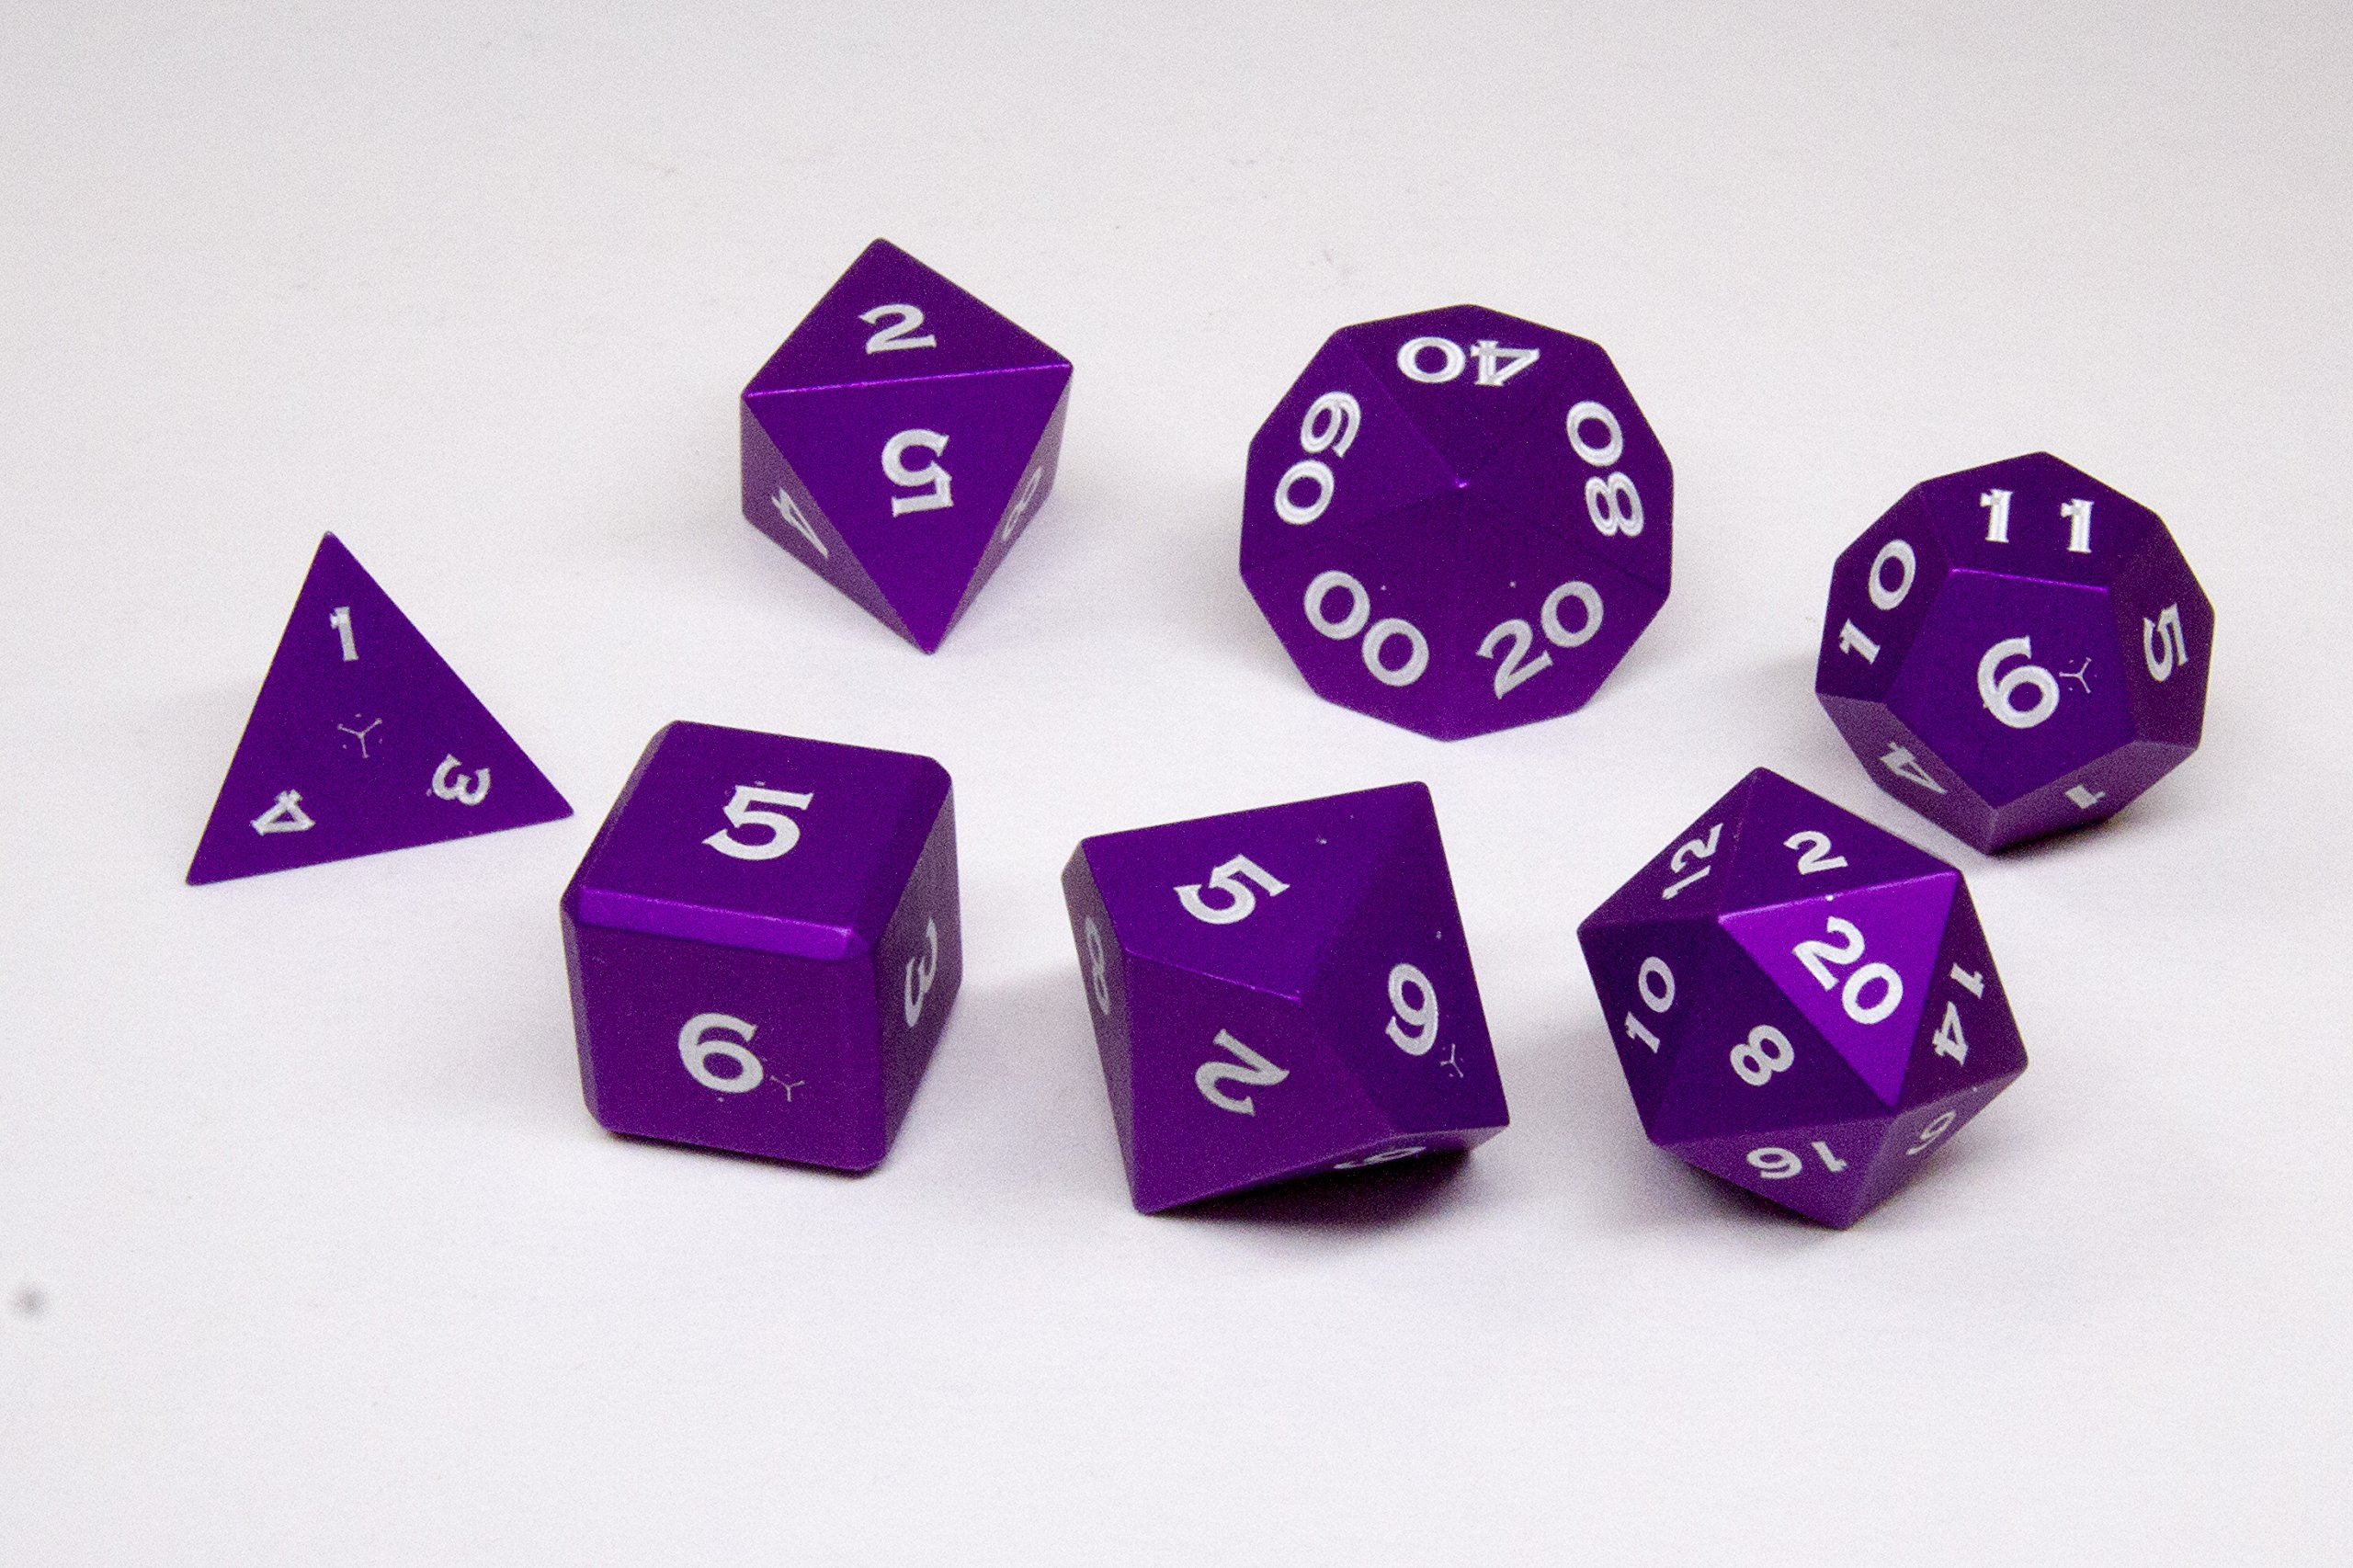 Gravity Dice 7 Metal Polyhedral Dice Set - Anodized Aluminum - World's Most Precise Gaming Dice (Purple)